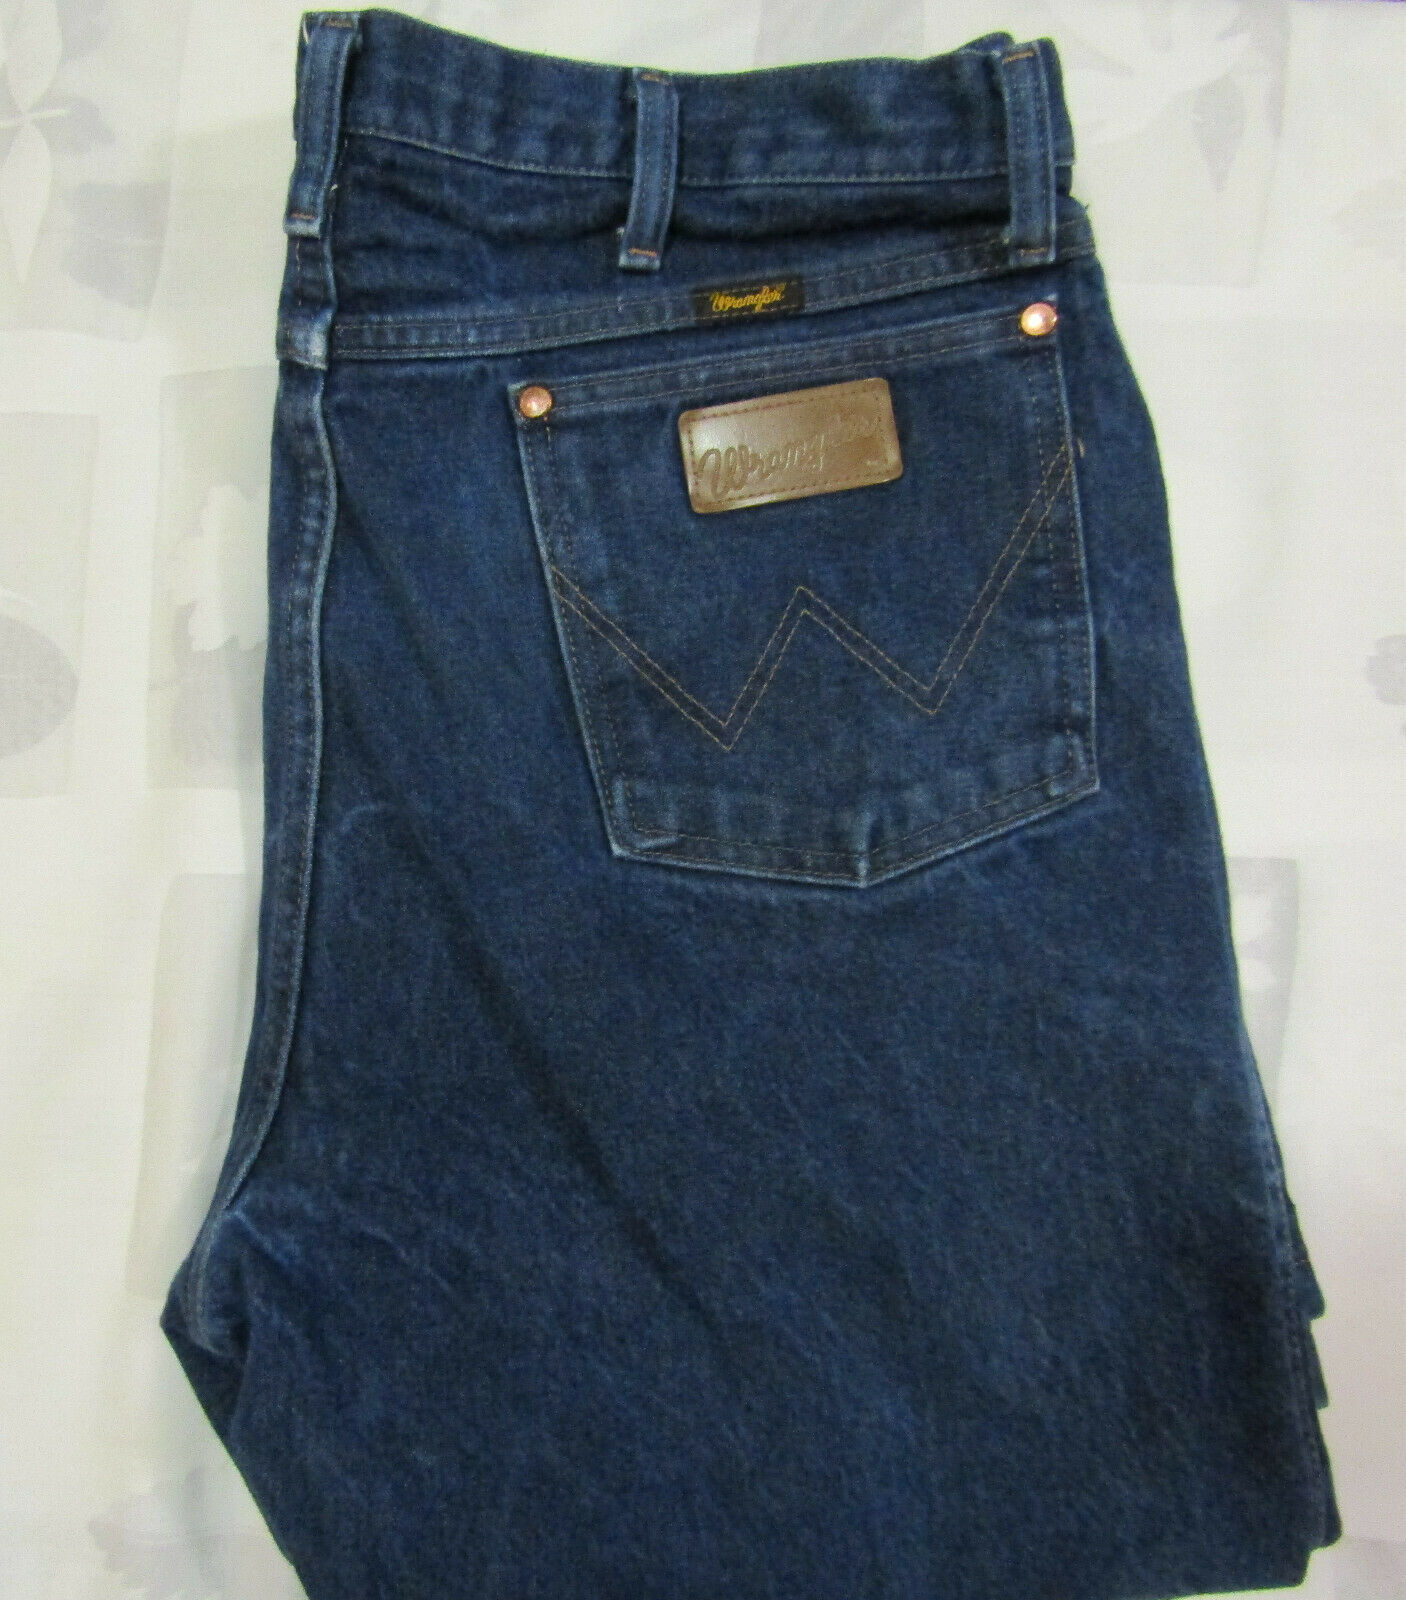 Primary image for Wrangler 38 X 40 Mens Blue Denim Jeans Cowboy Vintage Made In Mexico USA 13MWZ